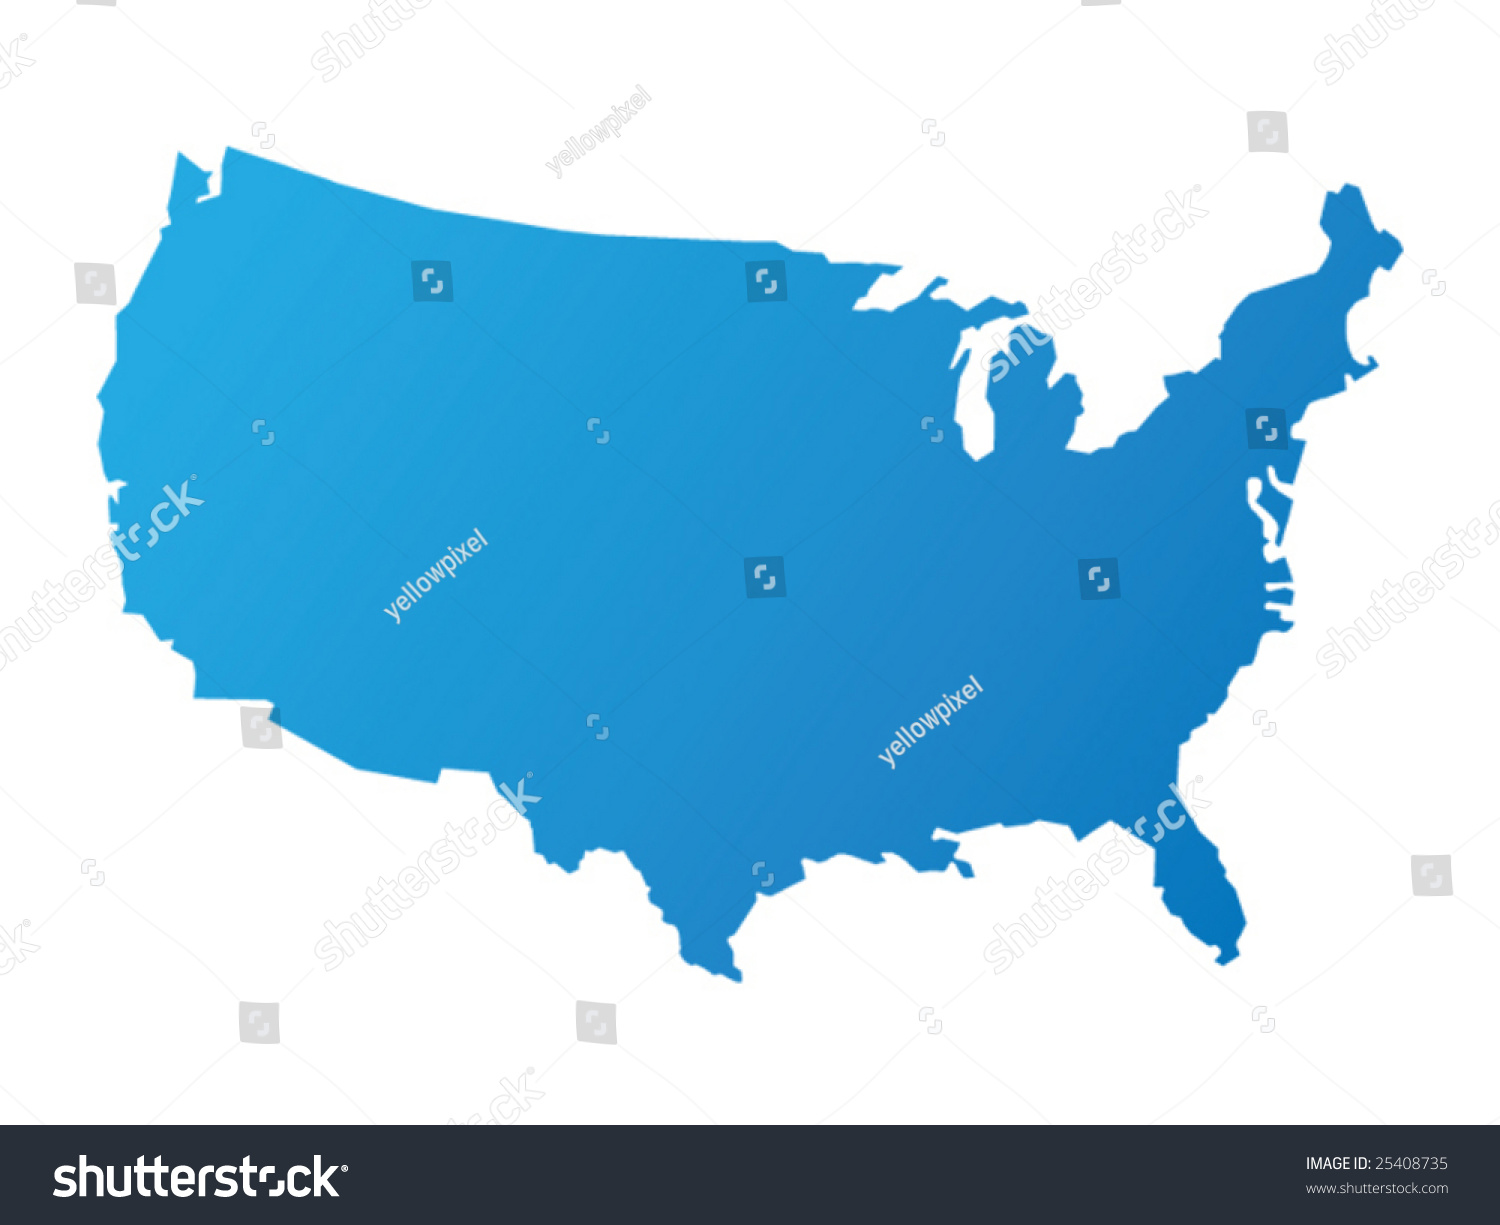 Map Of USA Satellite Map Worldofmapsnet Online Maps And Usa Map - Maps of usa